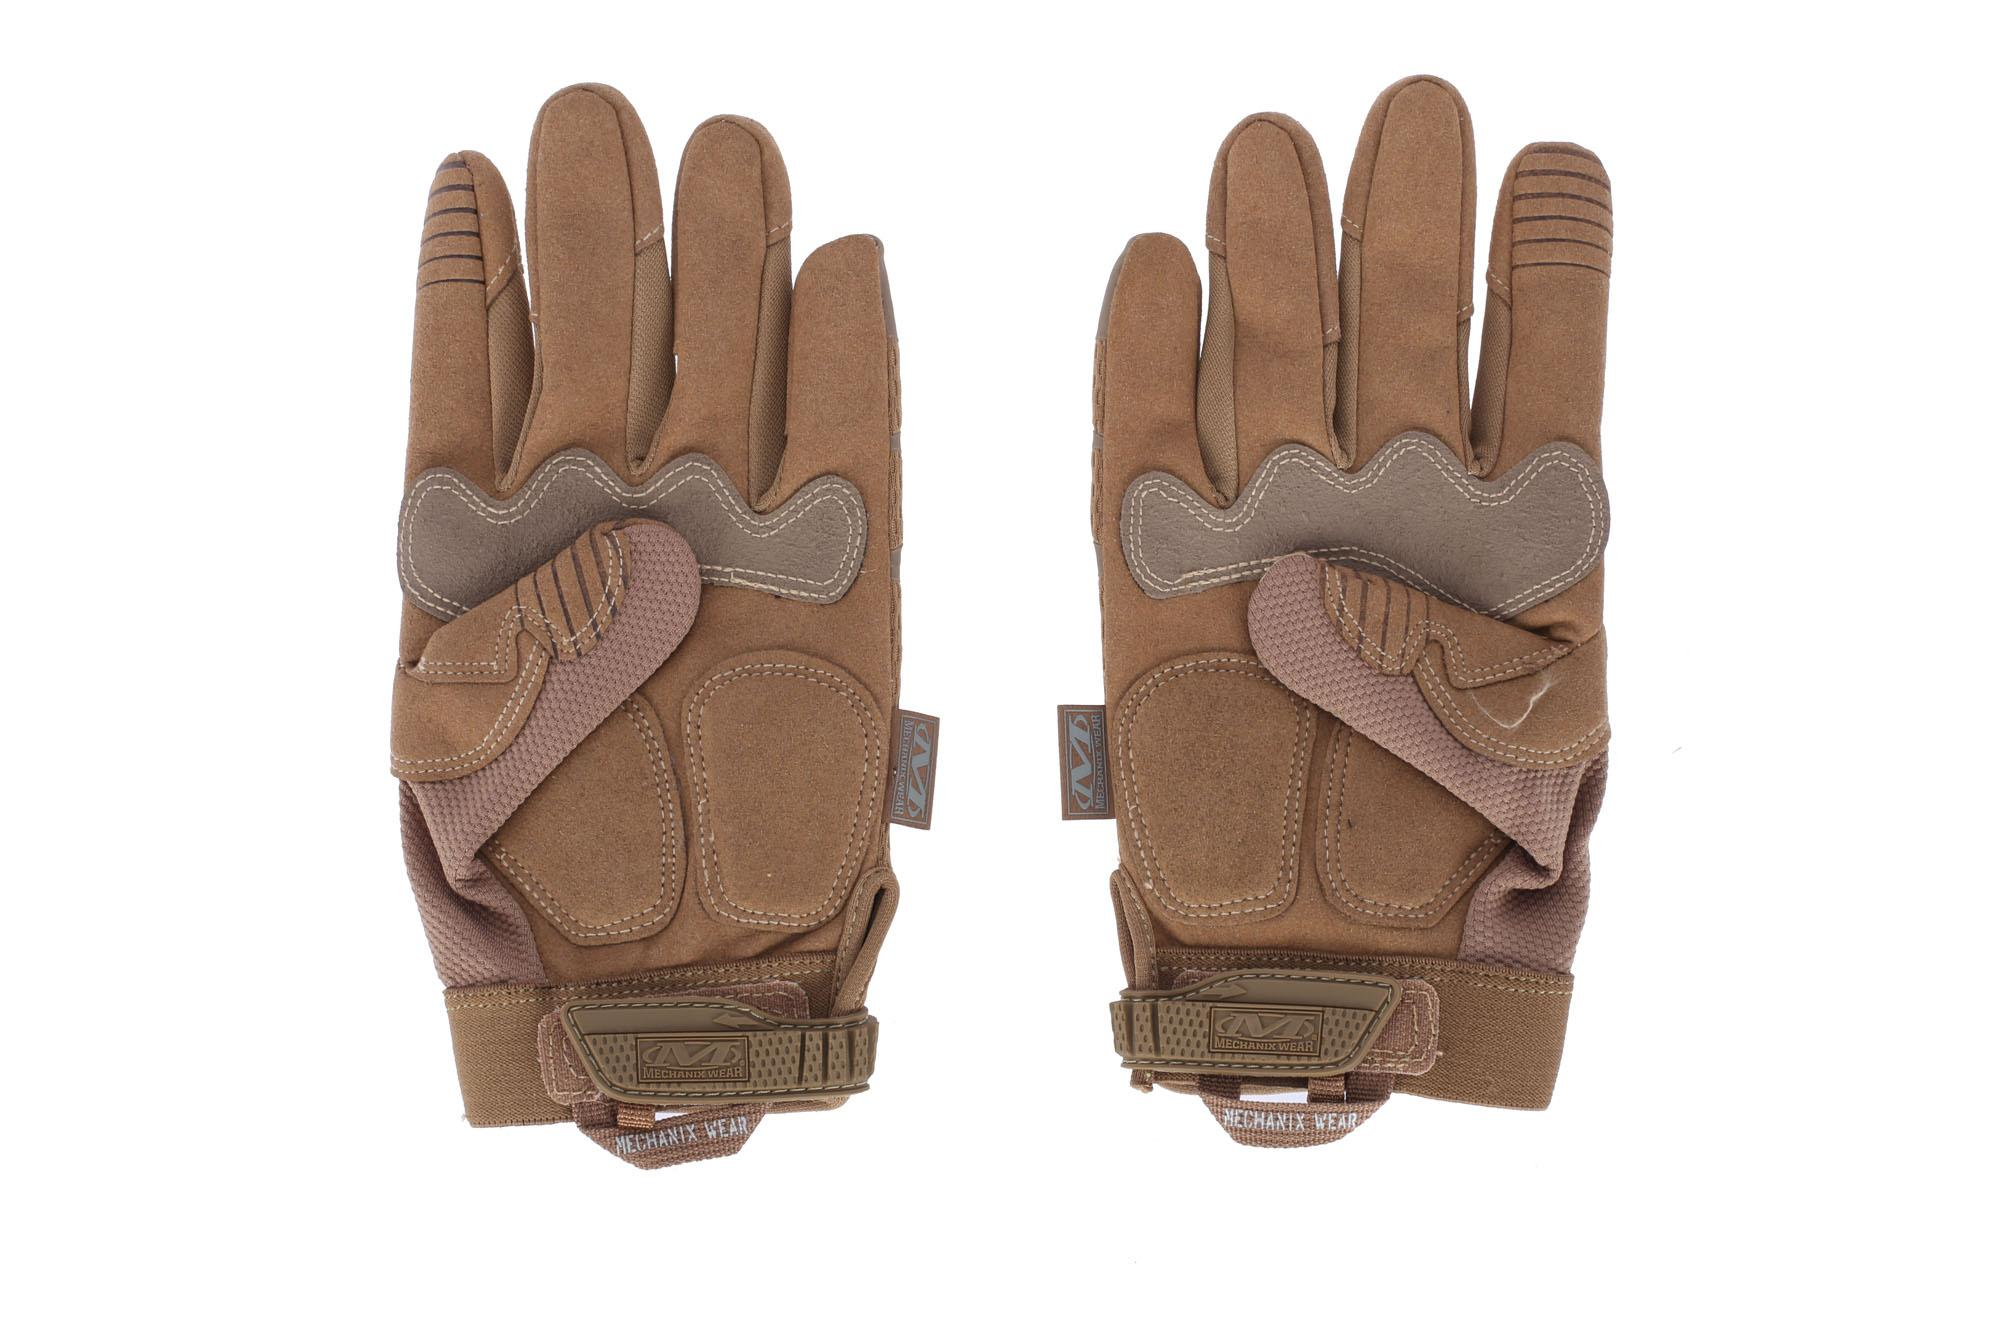 Mechanix Wear M-Pact Coyote Glove - Large